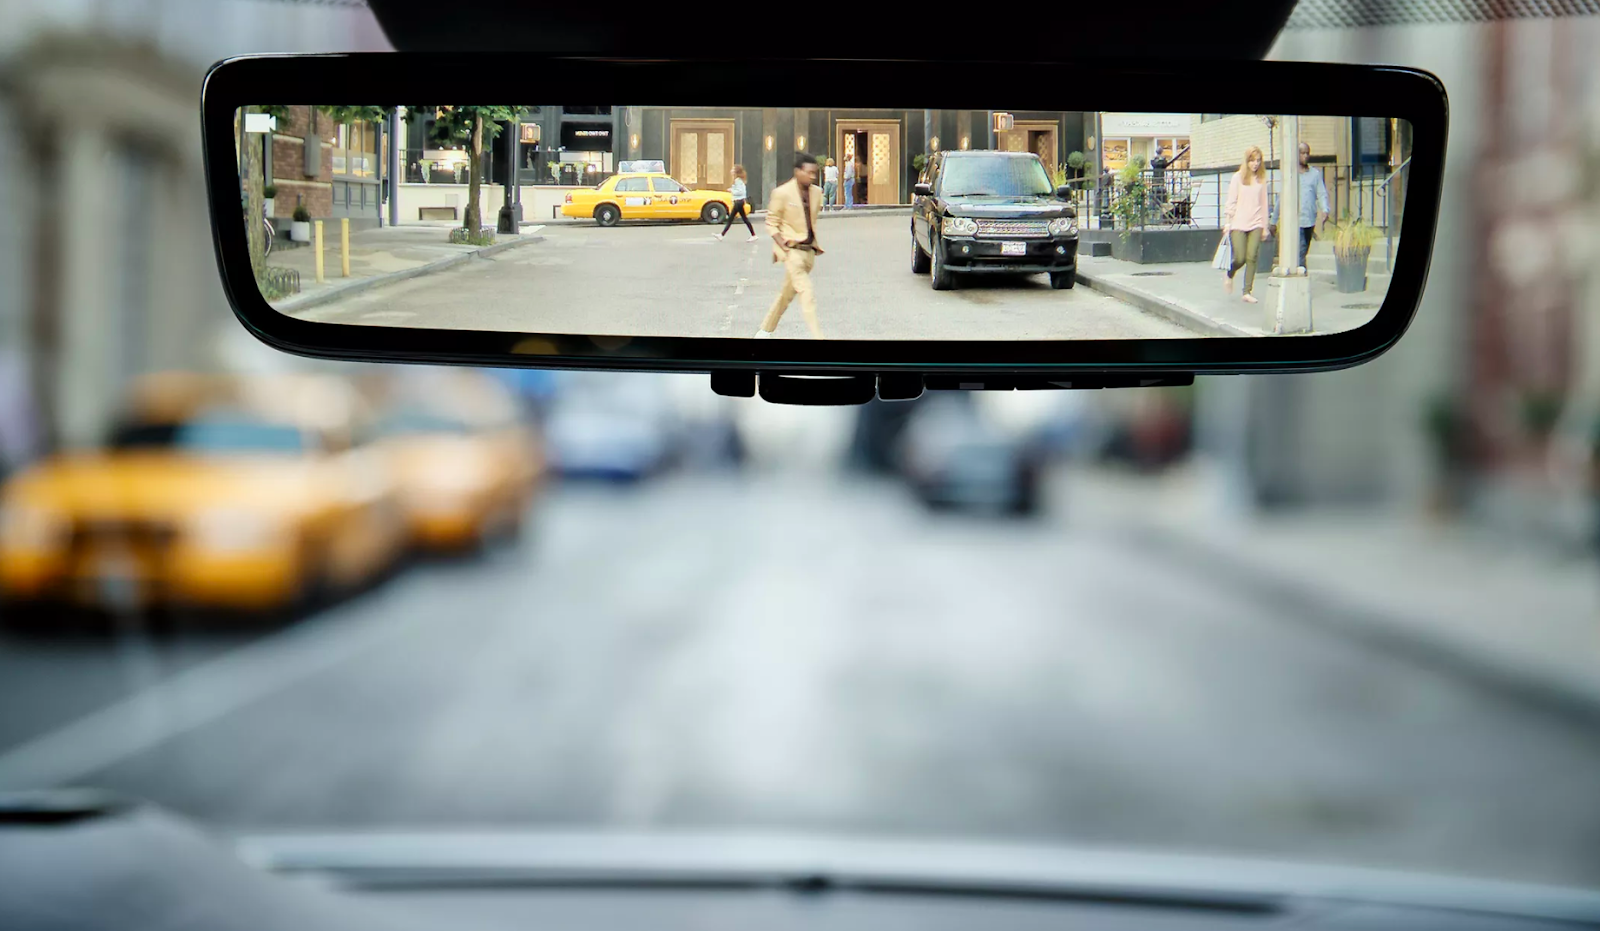 A view of what we see in the rear-view mirror of an automobile.